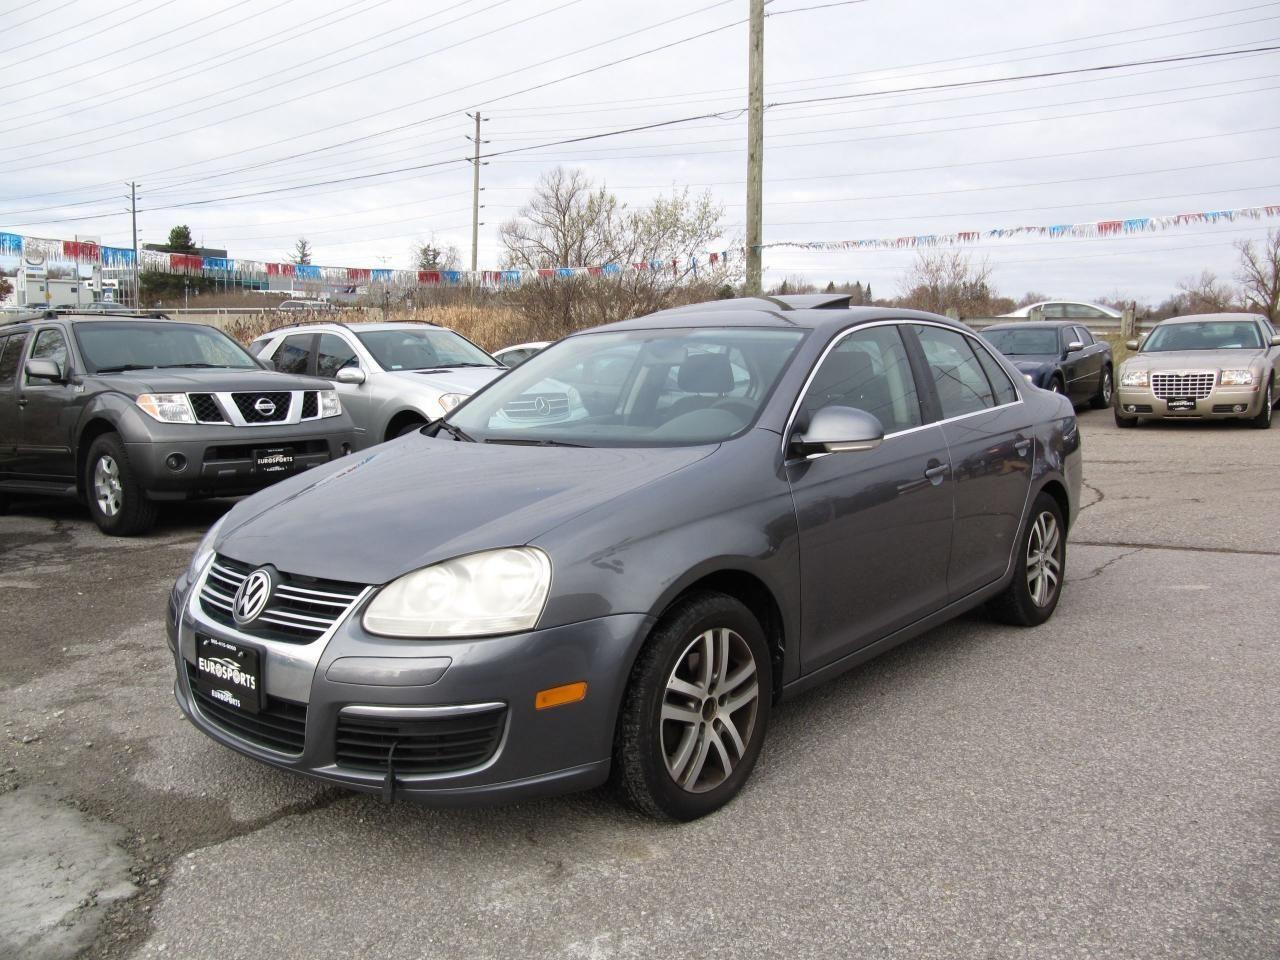 used 2006 volkswagen jetta 1 9l tdi for sale in newmarket ontario. Black Bedroom Furniture Sets. Home Design Ideas